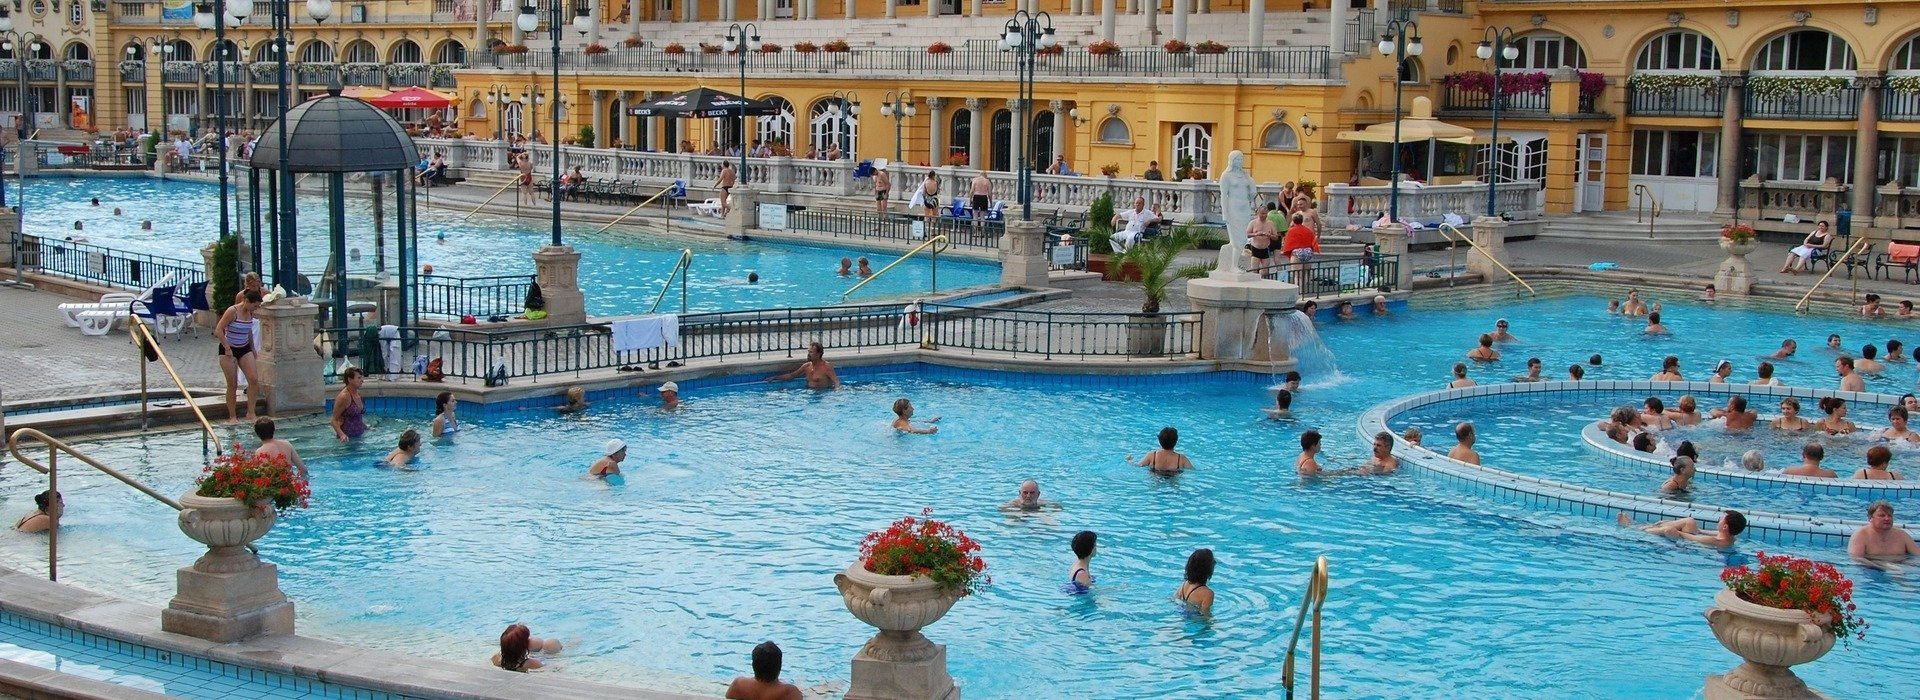 Spas in Budapest – Budapest thermal baths